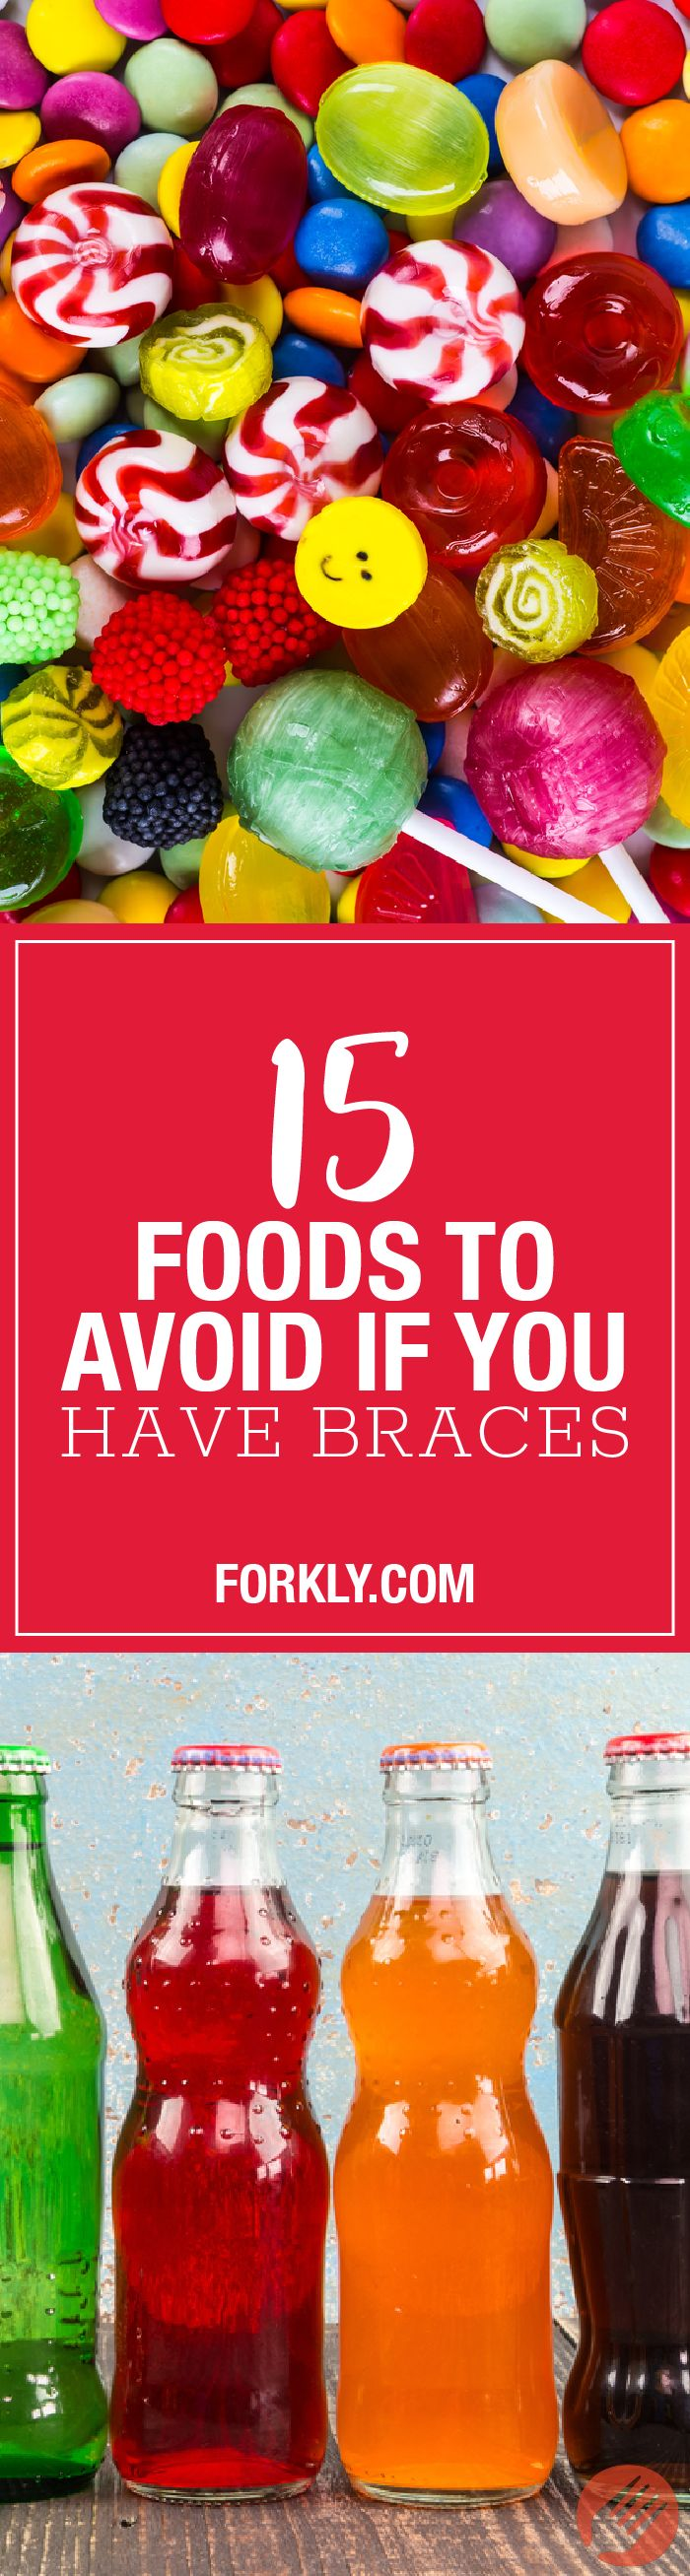 15 Foods To Avoid If You Have Braces Want Make The Most Of Your These Are Some Need Cut Out